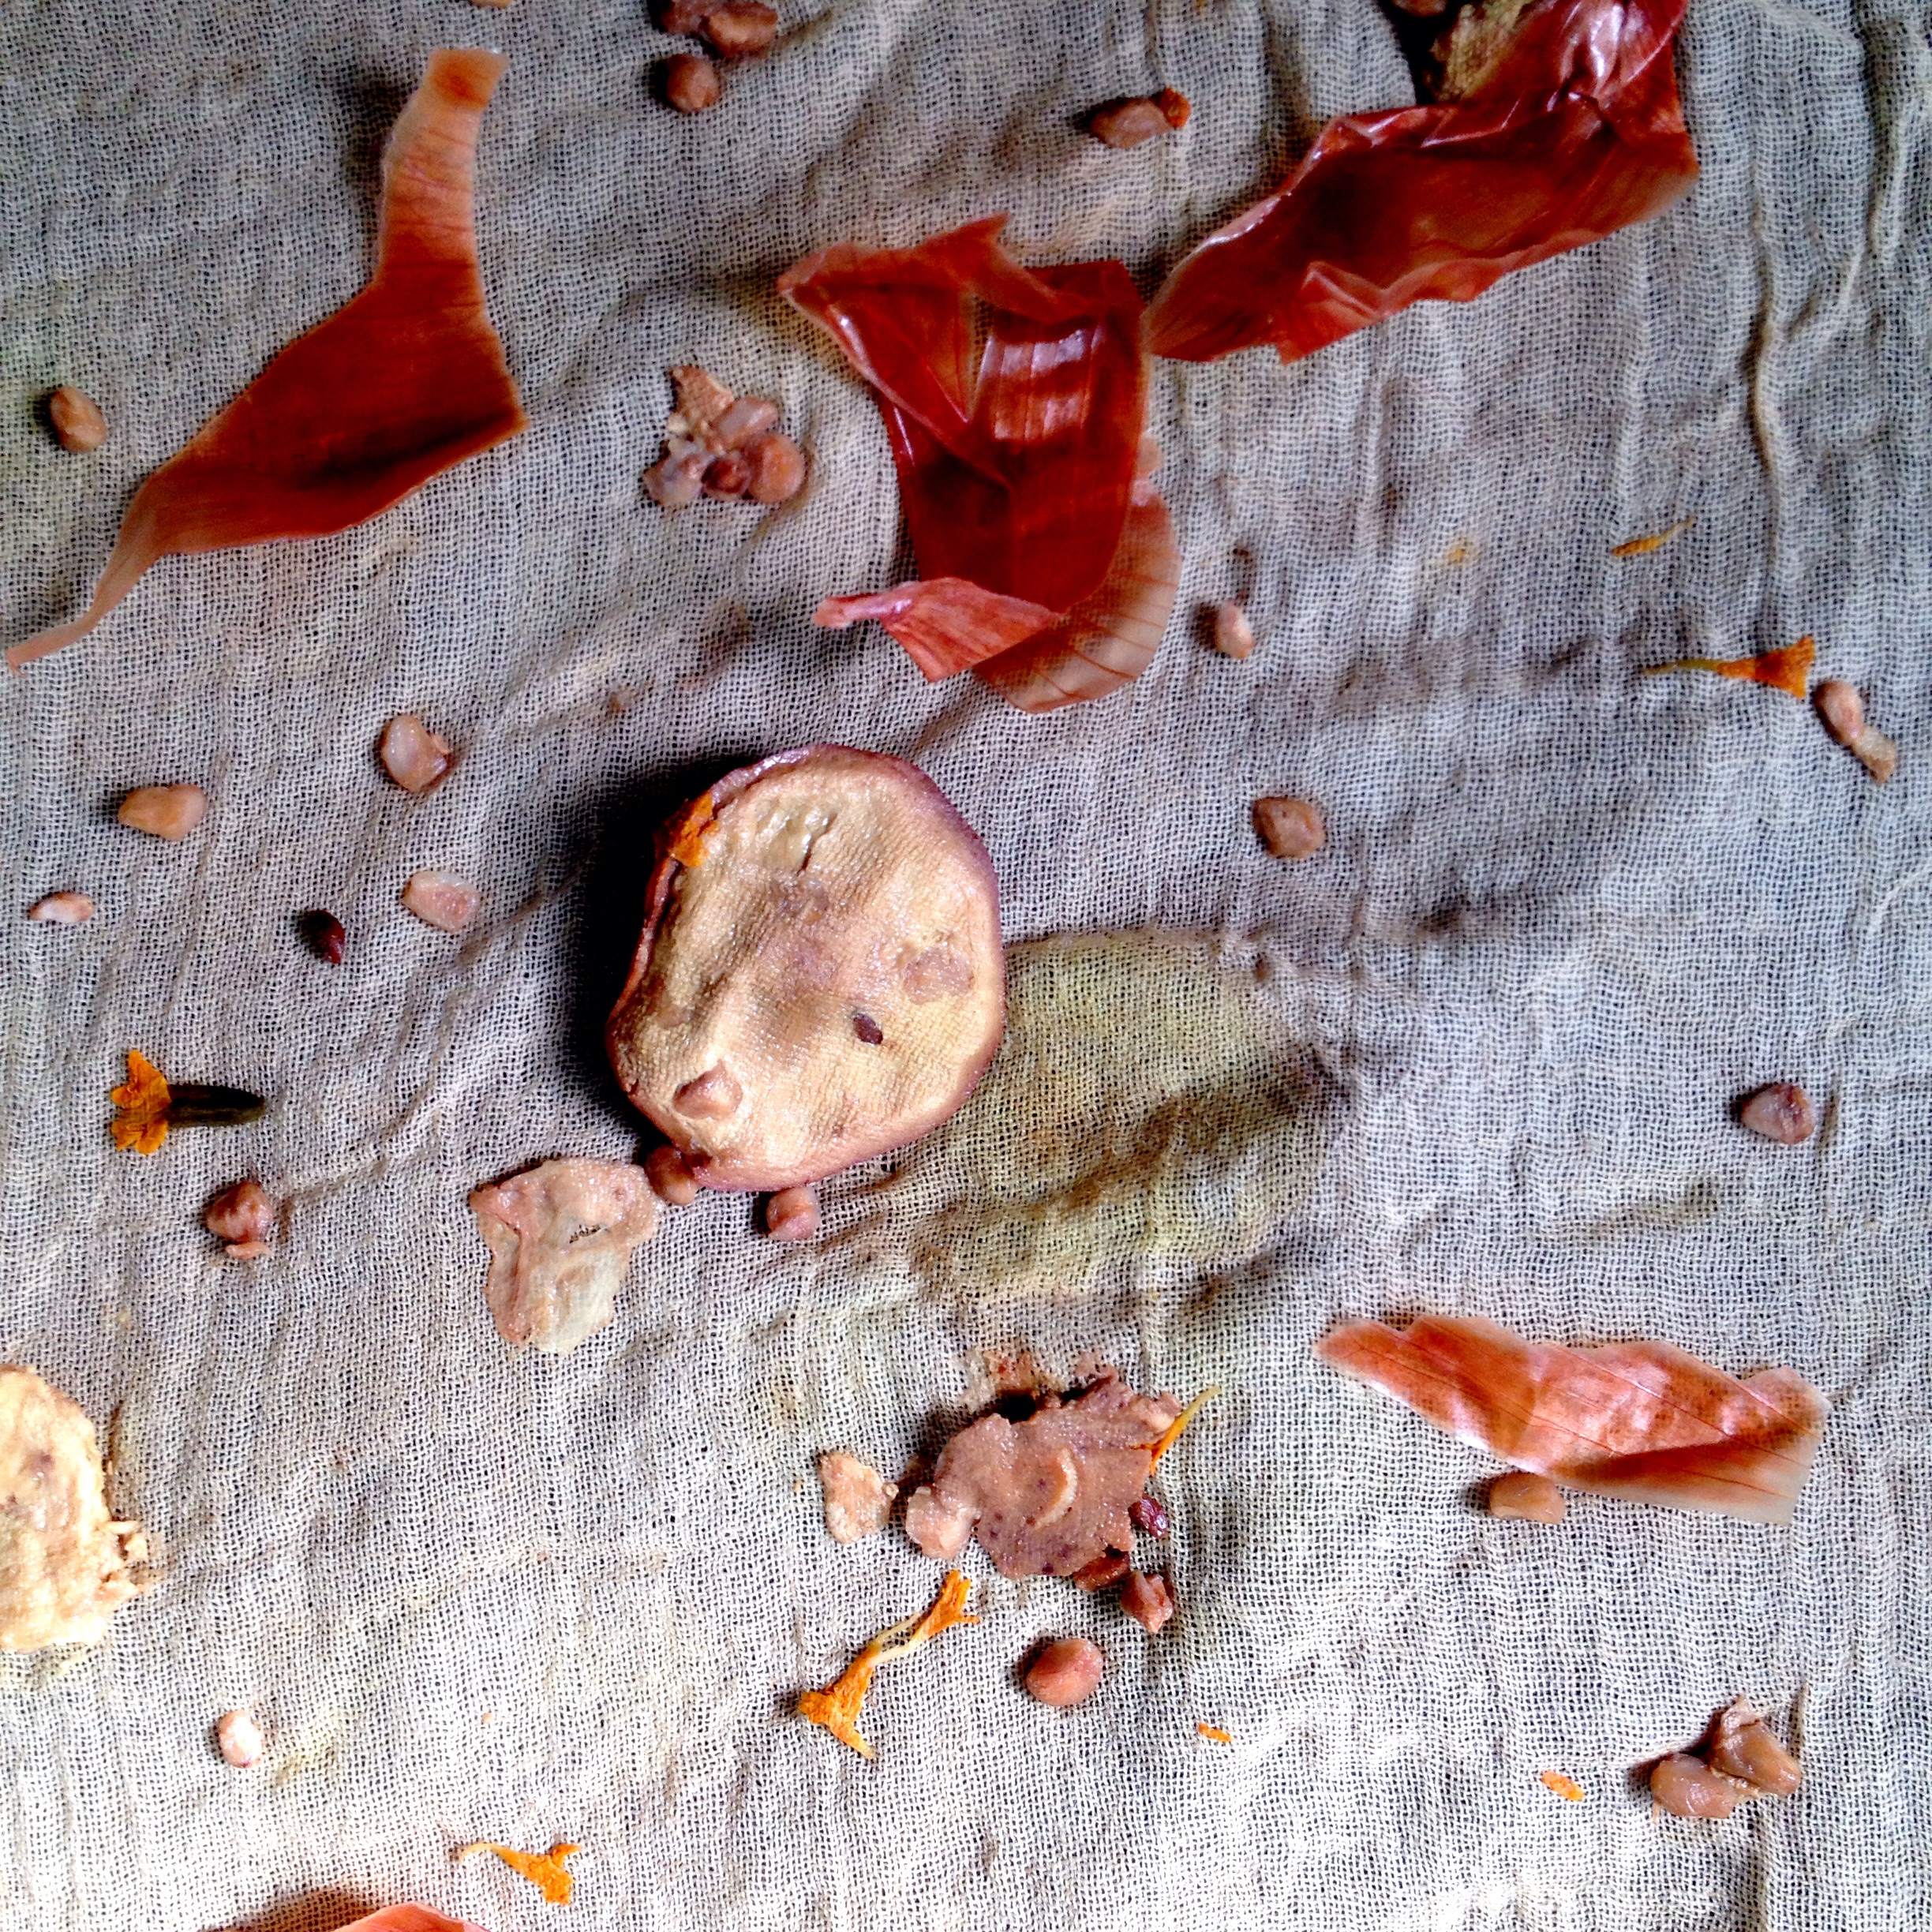 Cotton/linen gauze with yellow onion skins, pomegranate rind pieces, pomegranate arils (seeds), and marigold petals